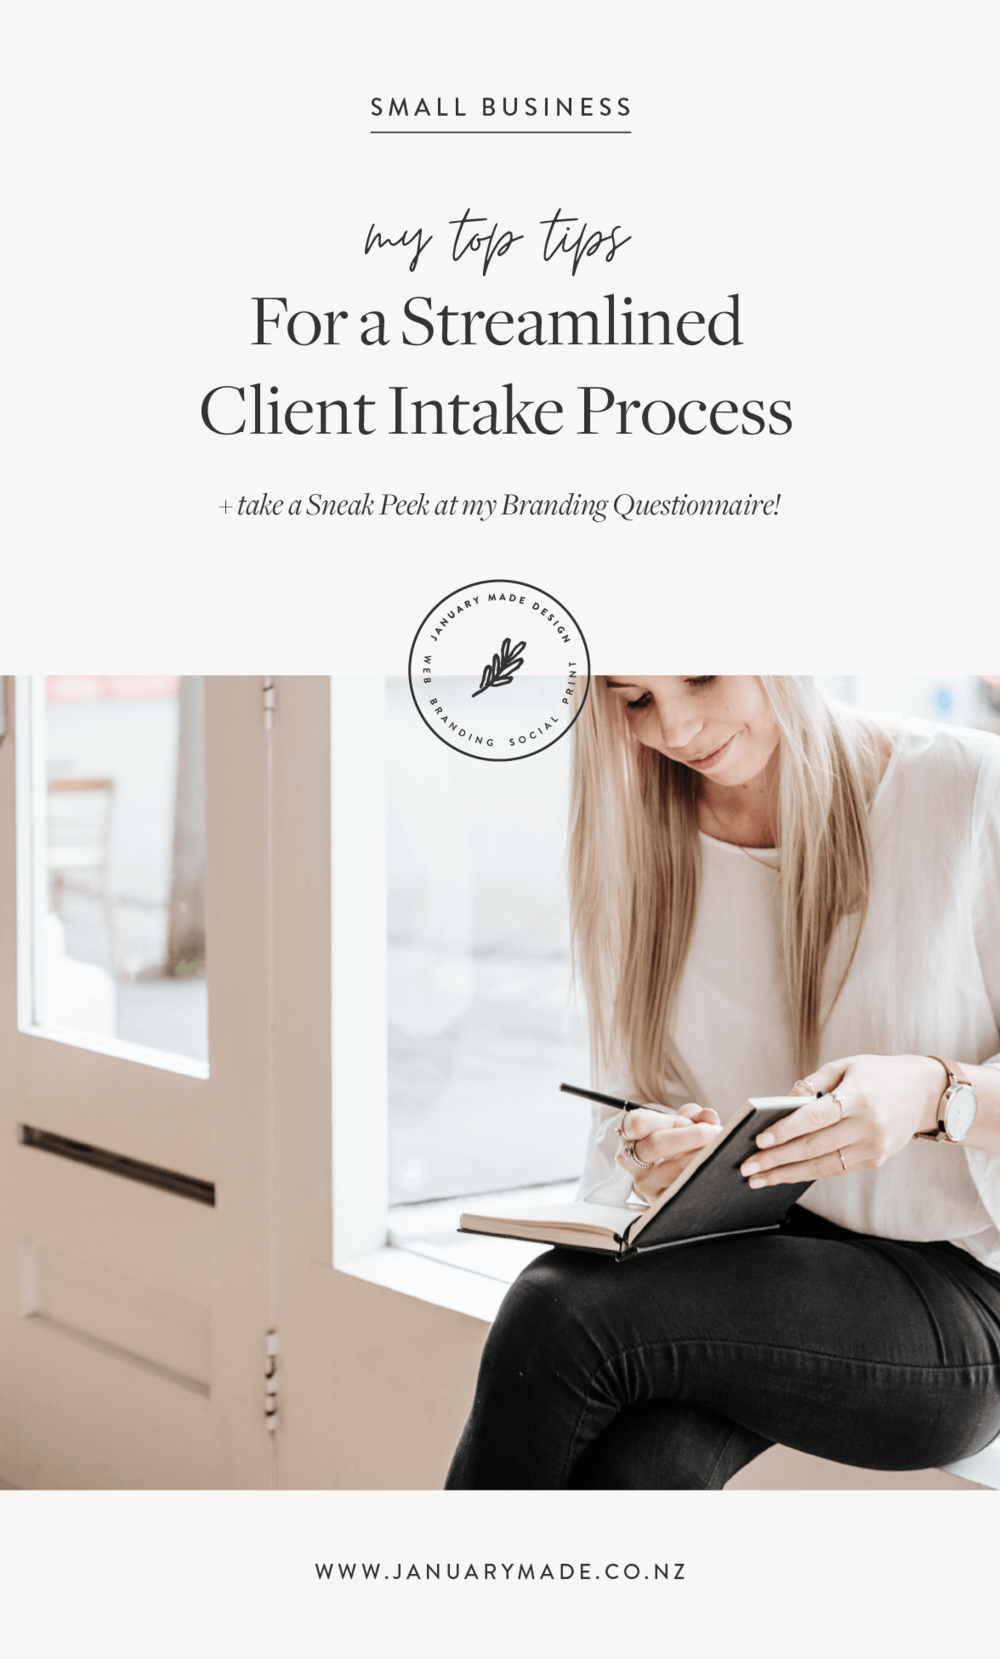 Client Intake Process Tips + take a Sneak Peek at my Questionnaire!